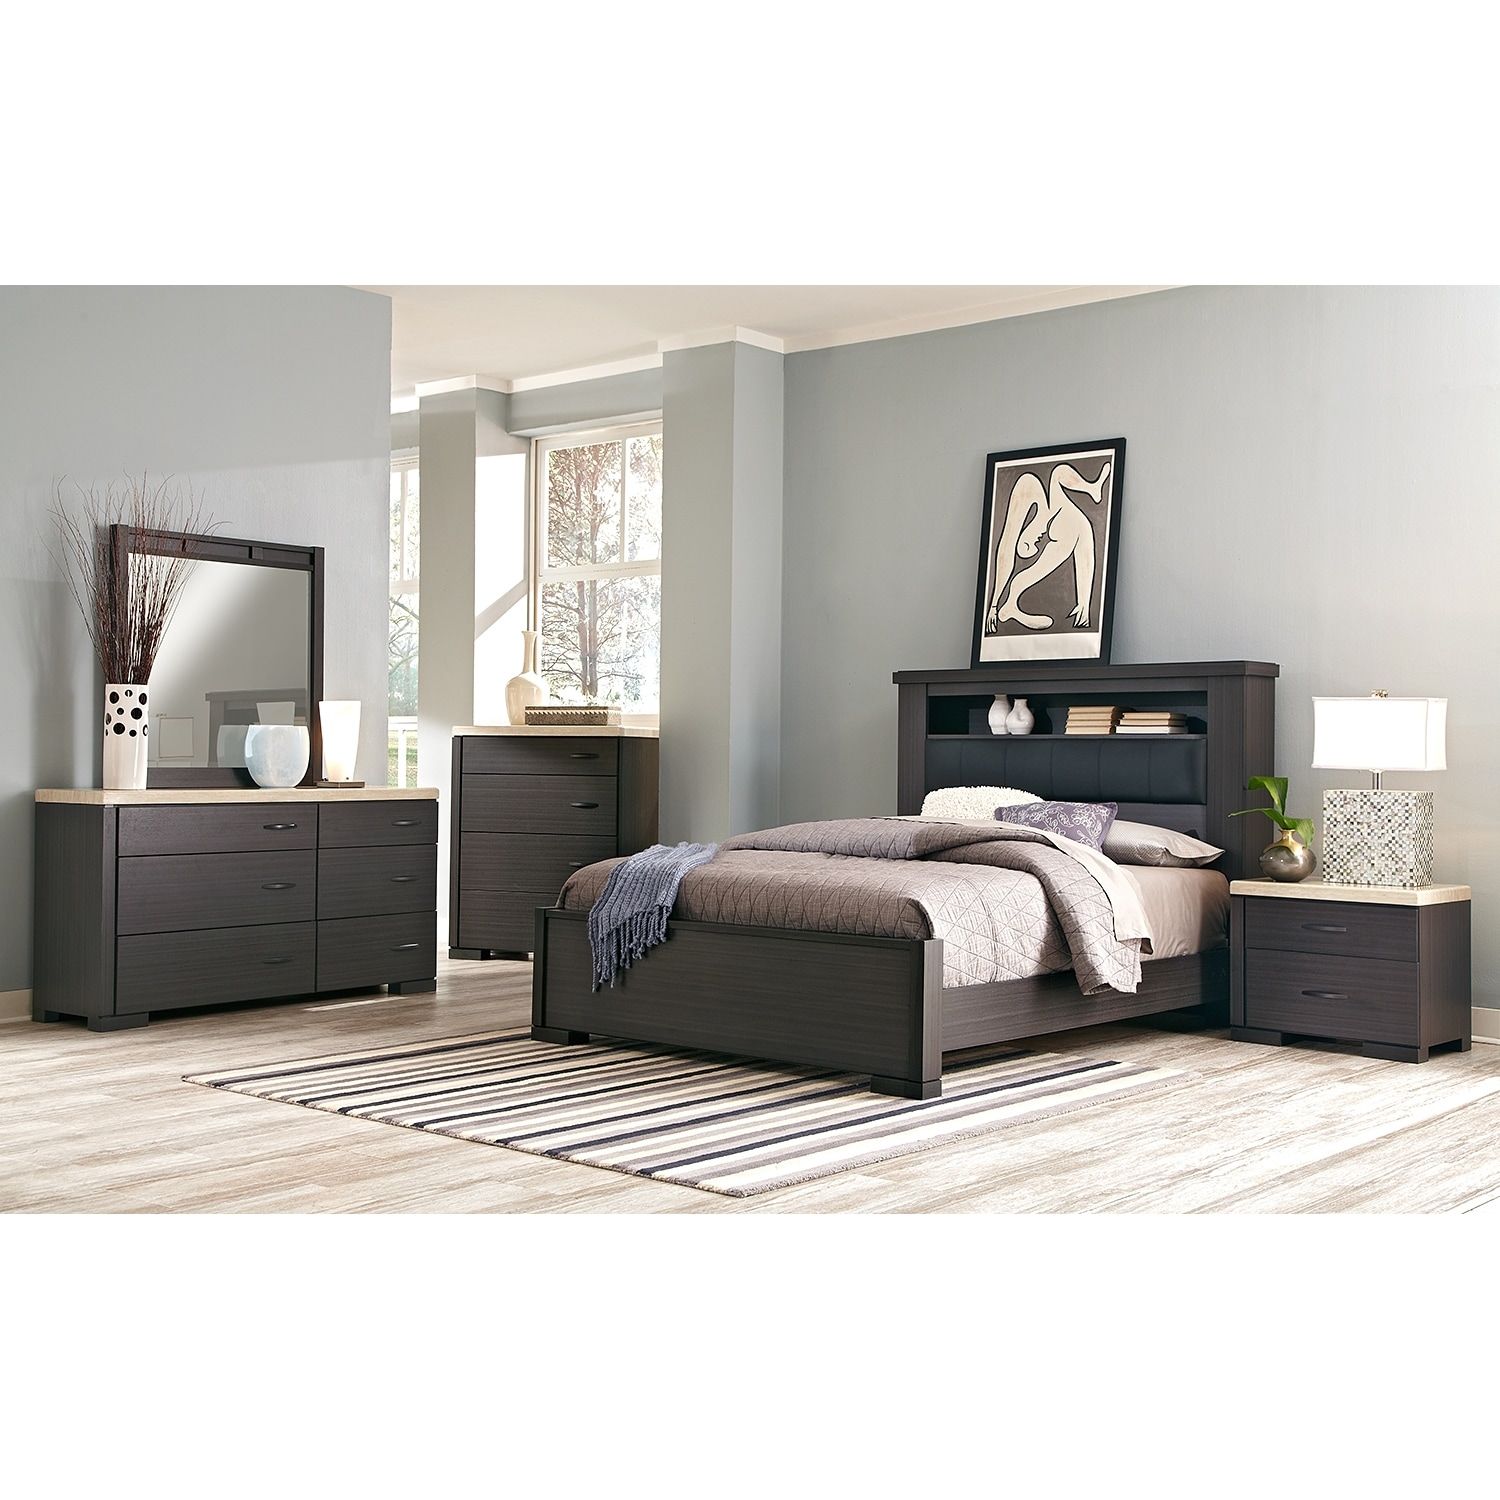 camino 7-piece king bedroom set - charcoal and ivory | value city